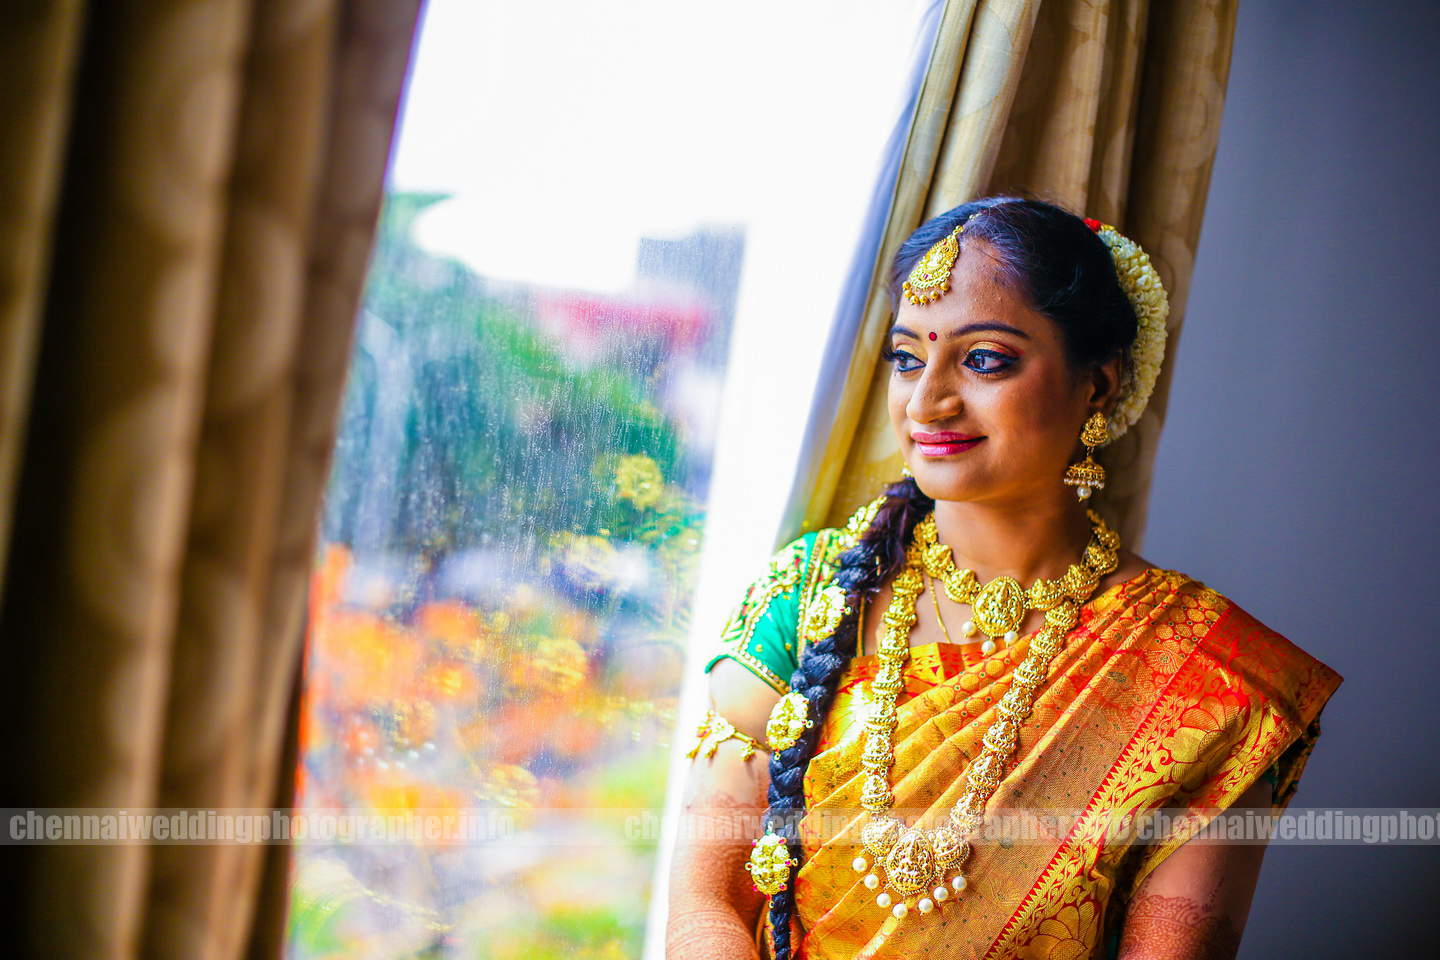 tamil weddings photos